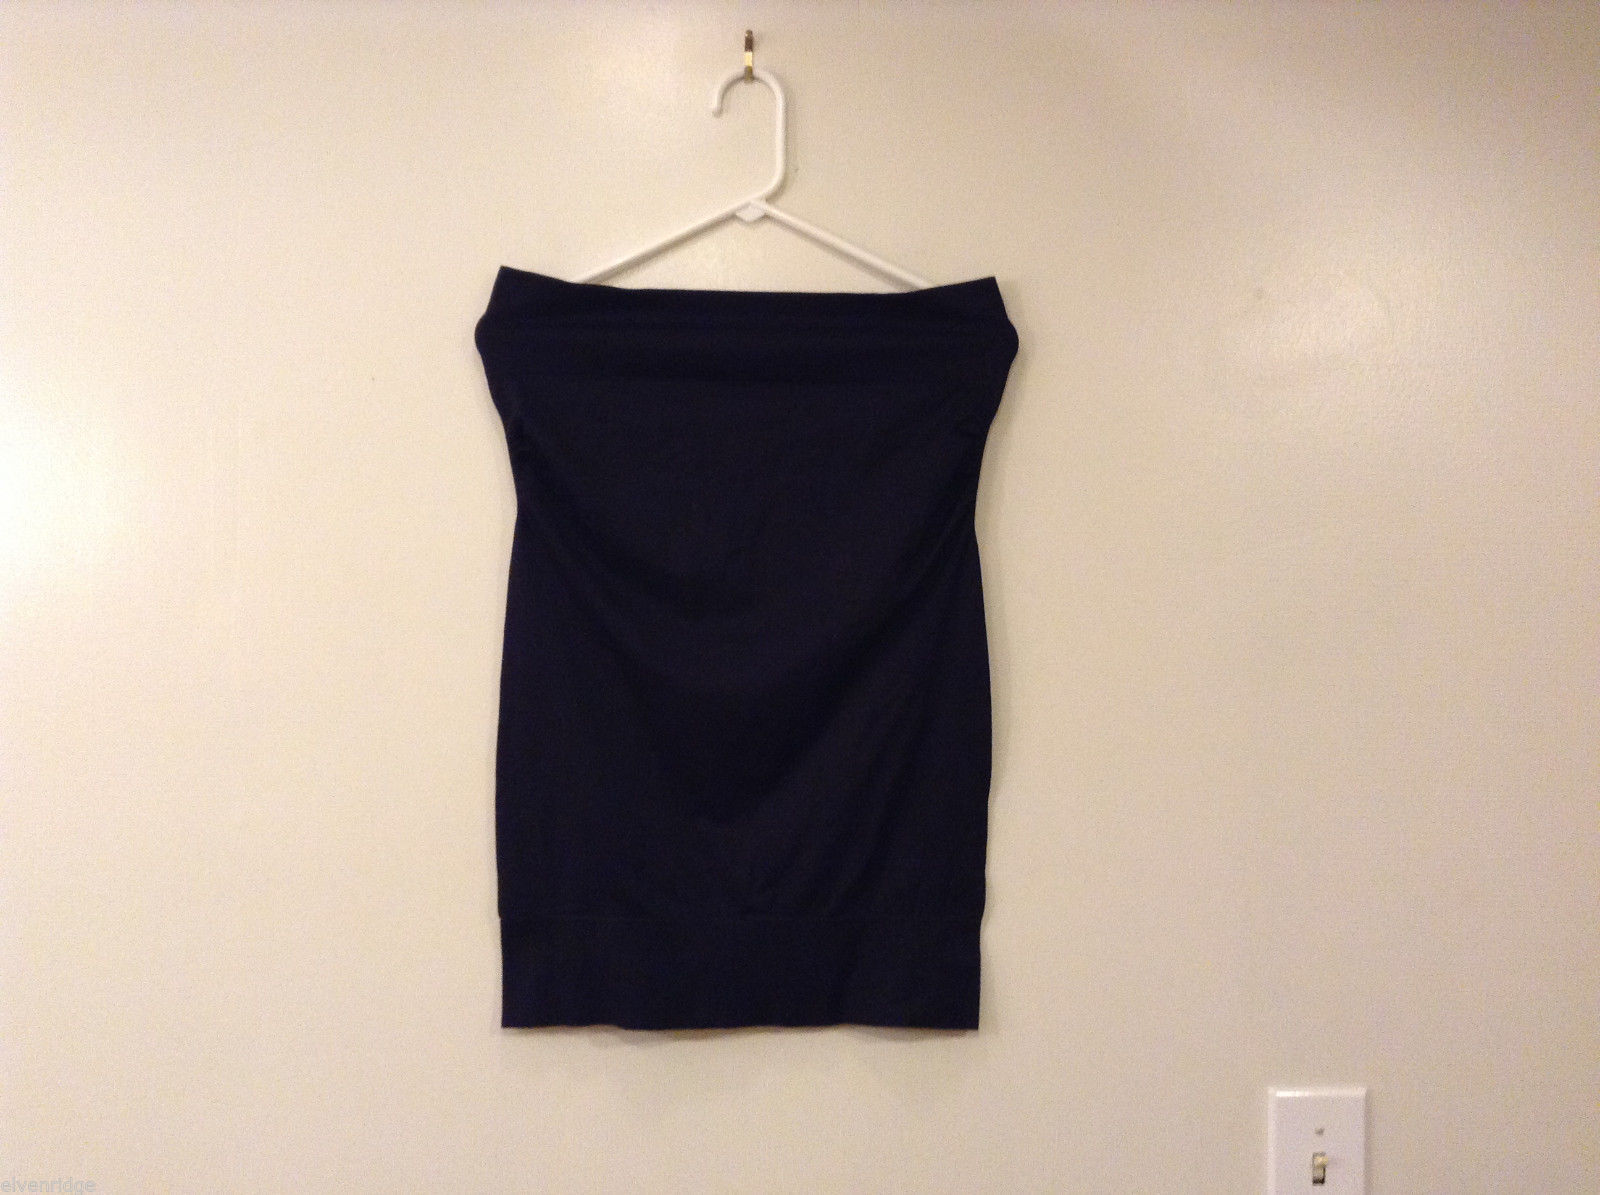 Charlotte Russe Black Nylon Stretch Sleeveless Strapless Mini Dress, size L/XL